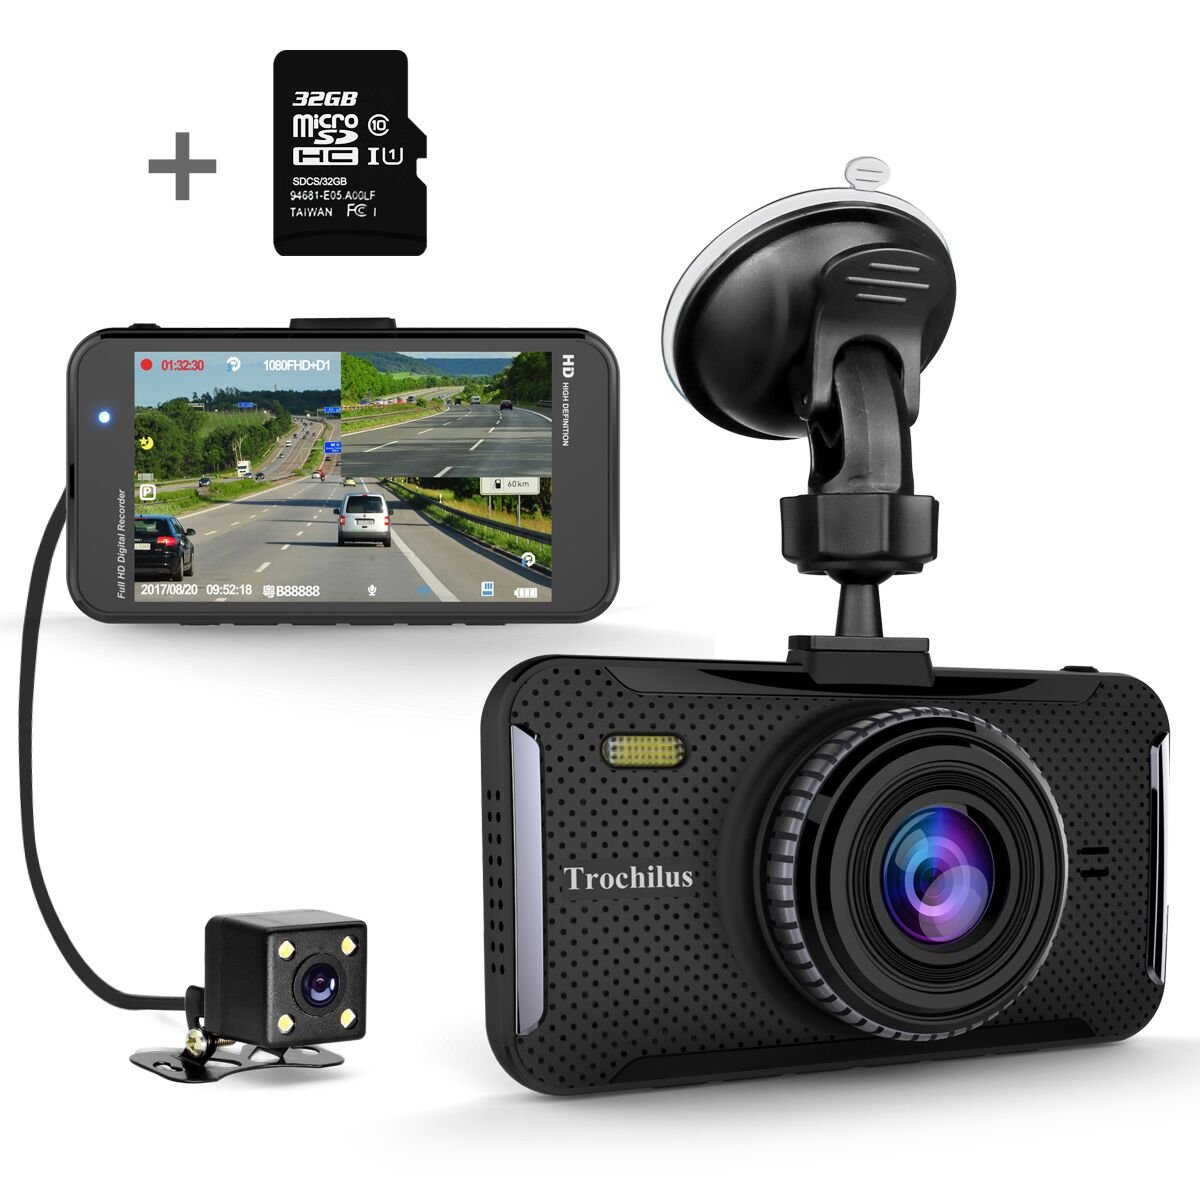 Trochilus Dual Dash Cam 4'' 1080P Front and Rear Dash Cams, 170 Degree Wide Angle Car Camera with G-Sensor, WDR, Loop Recording, Parking Monitor, Motion Detection, 32GB SD Card including